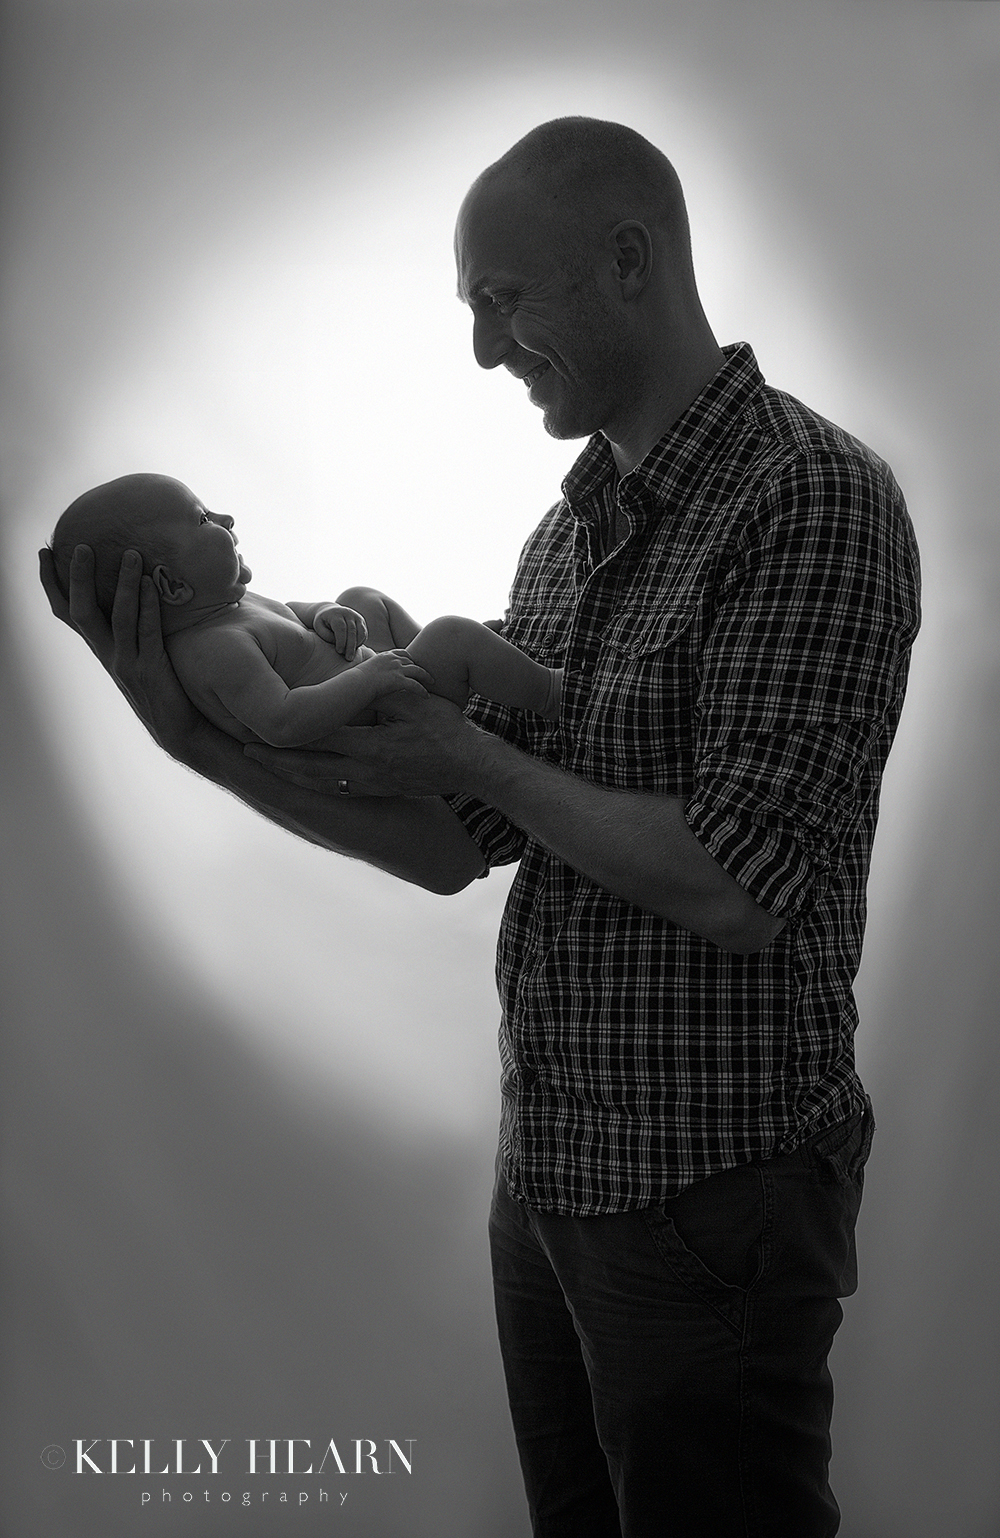 PORT_dad-holding-baby-silhouette.jpg#asset:1972